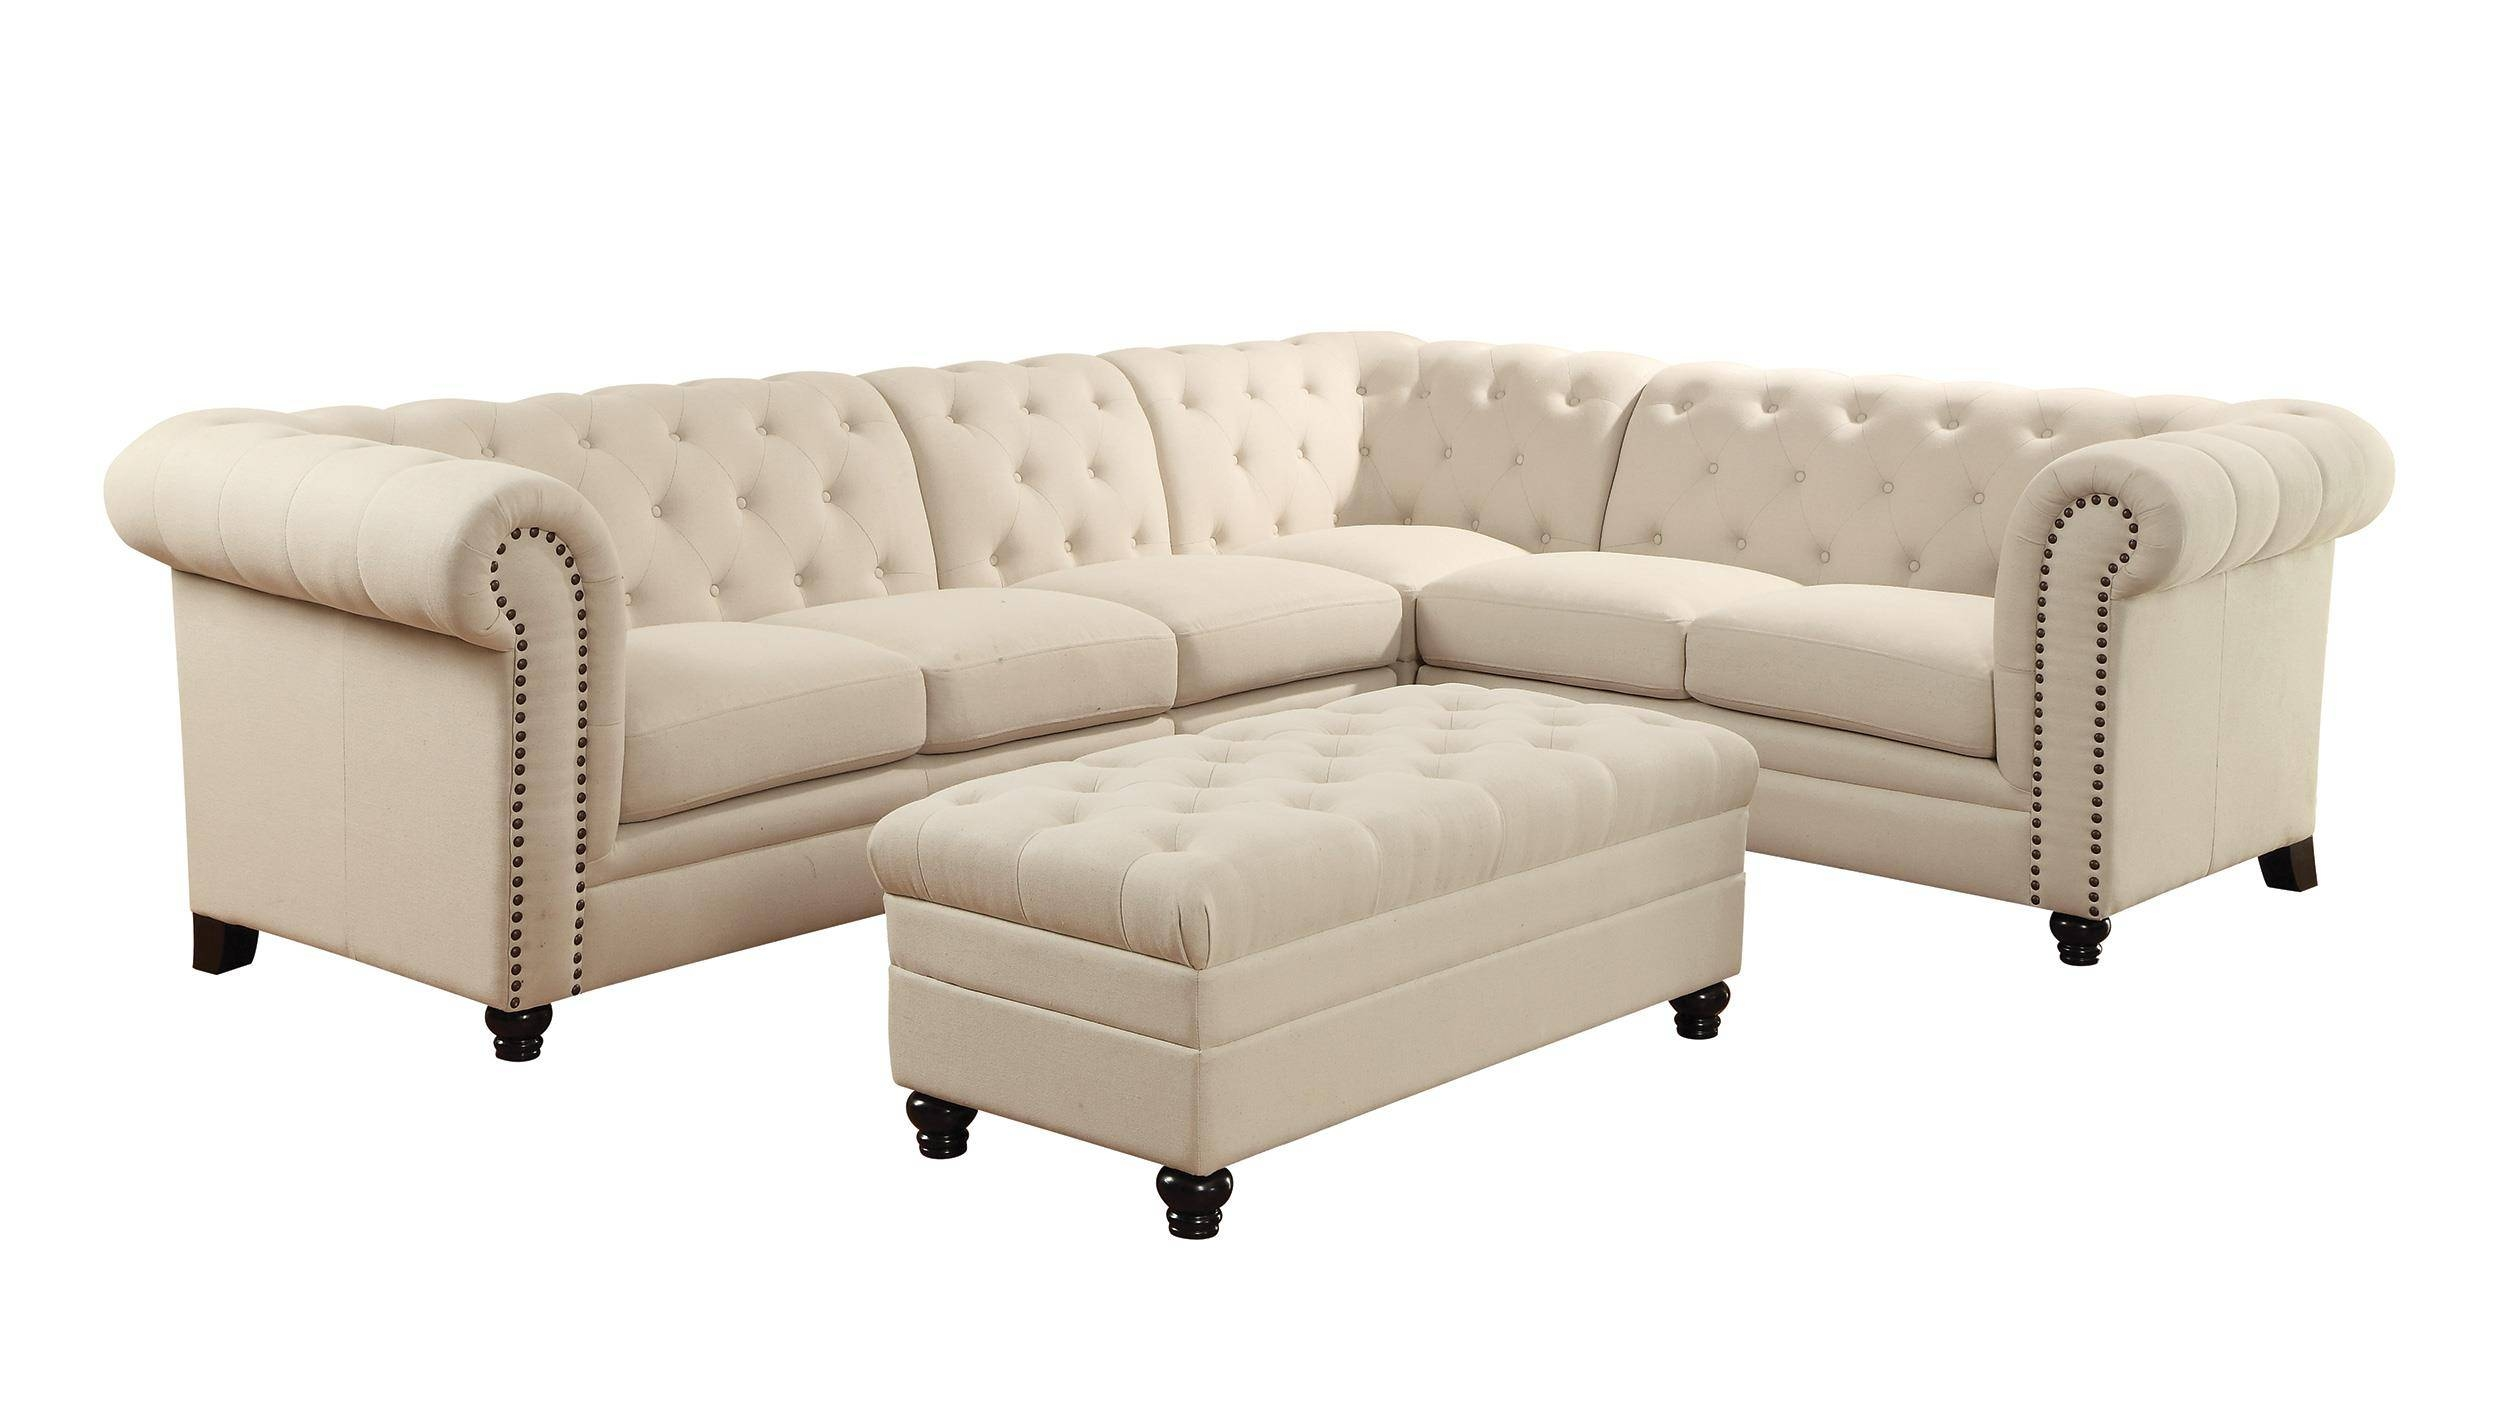 Coaster Roy Button-Tufted Sectional Sofa With Armless Chair - Del pertaining to Armless Sectional Sofas (Image 7 of 30)